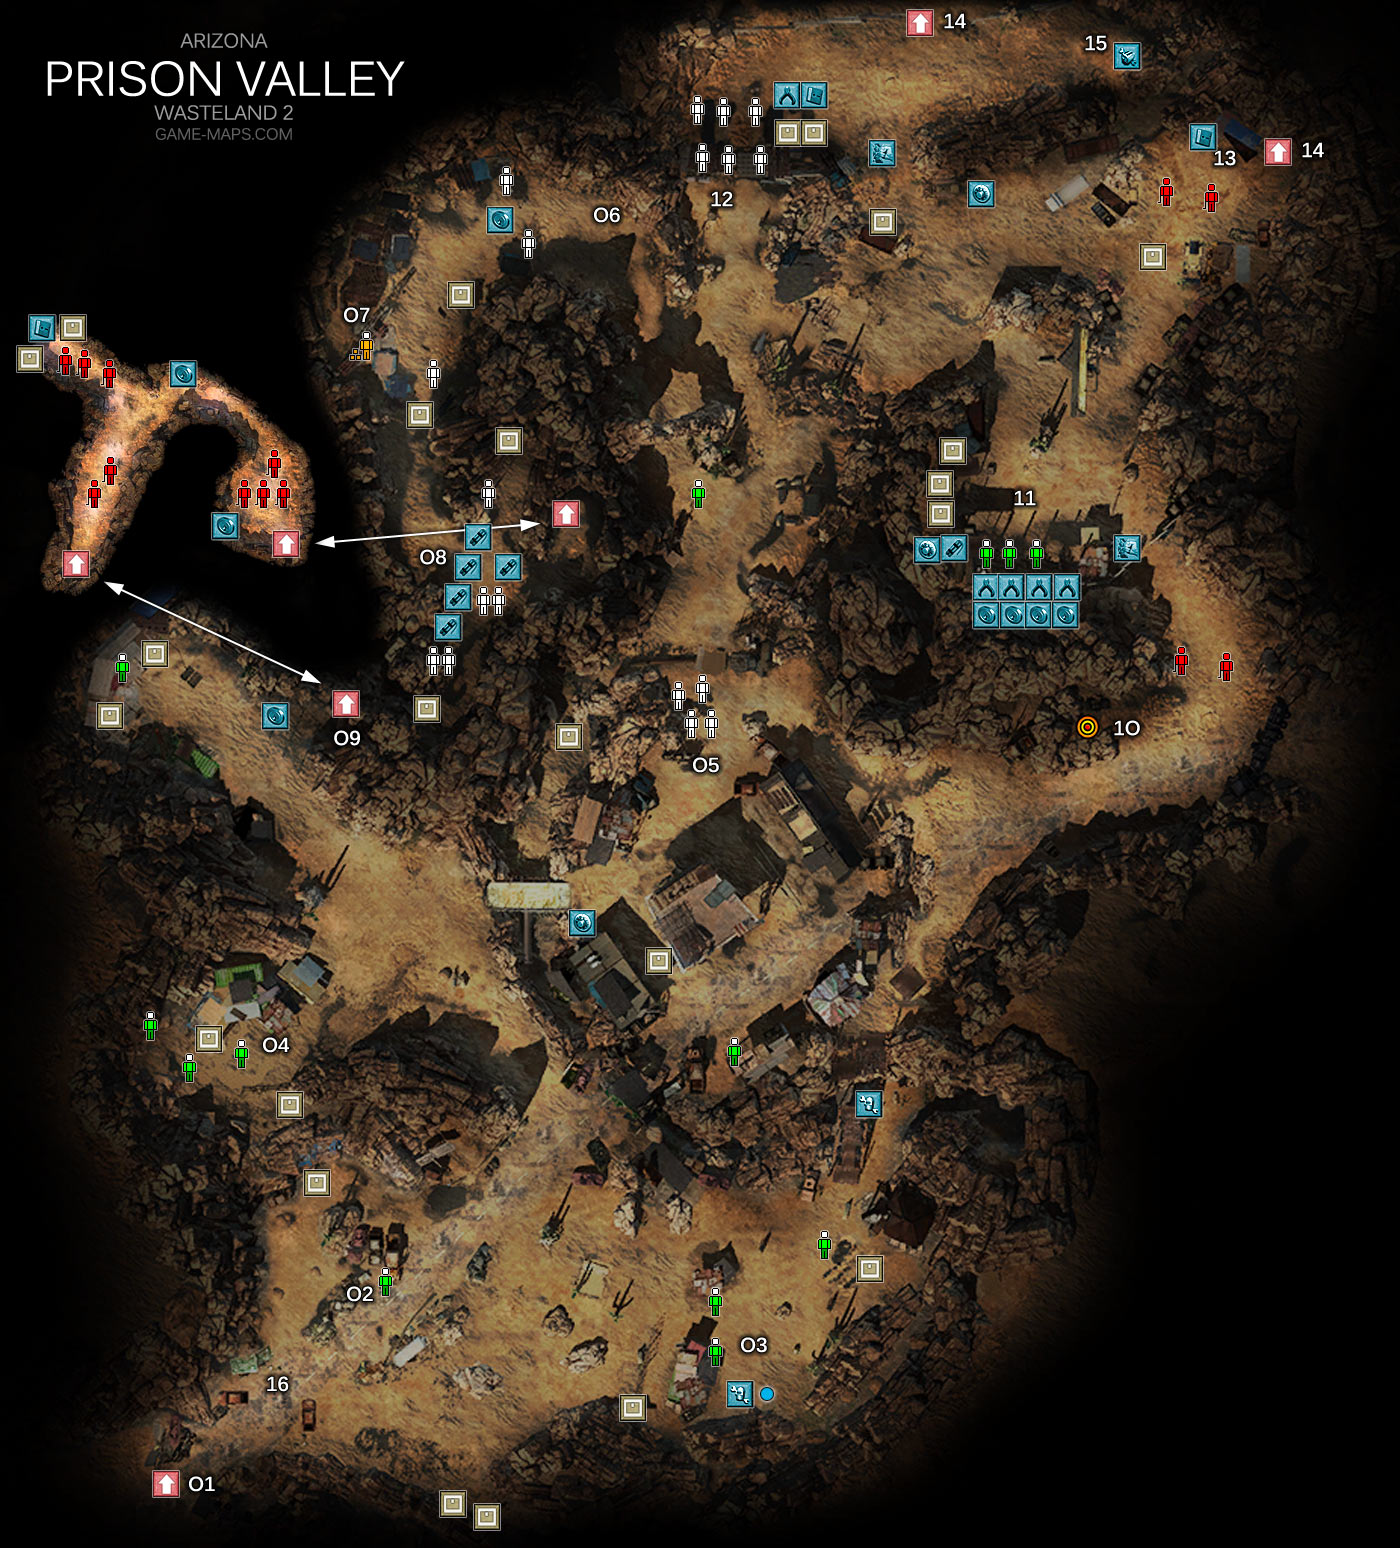 Map Of Arizona Prisons.Prison Valley Map Arizona Wasteland 2 Game Maps Com